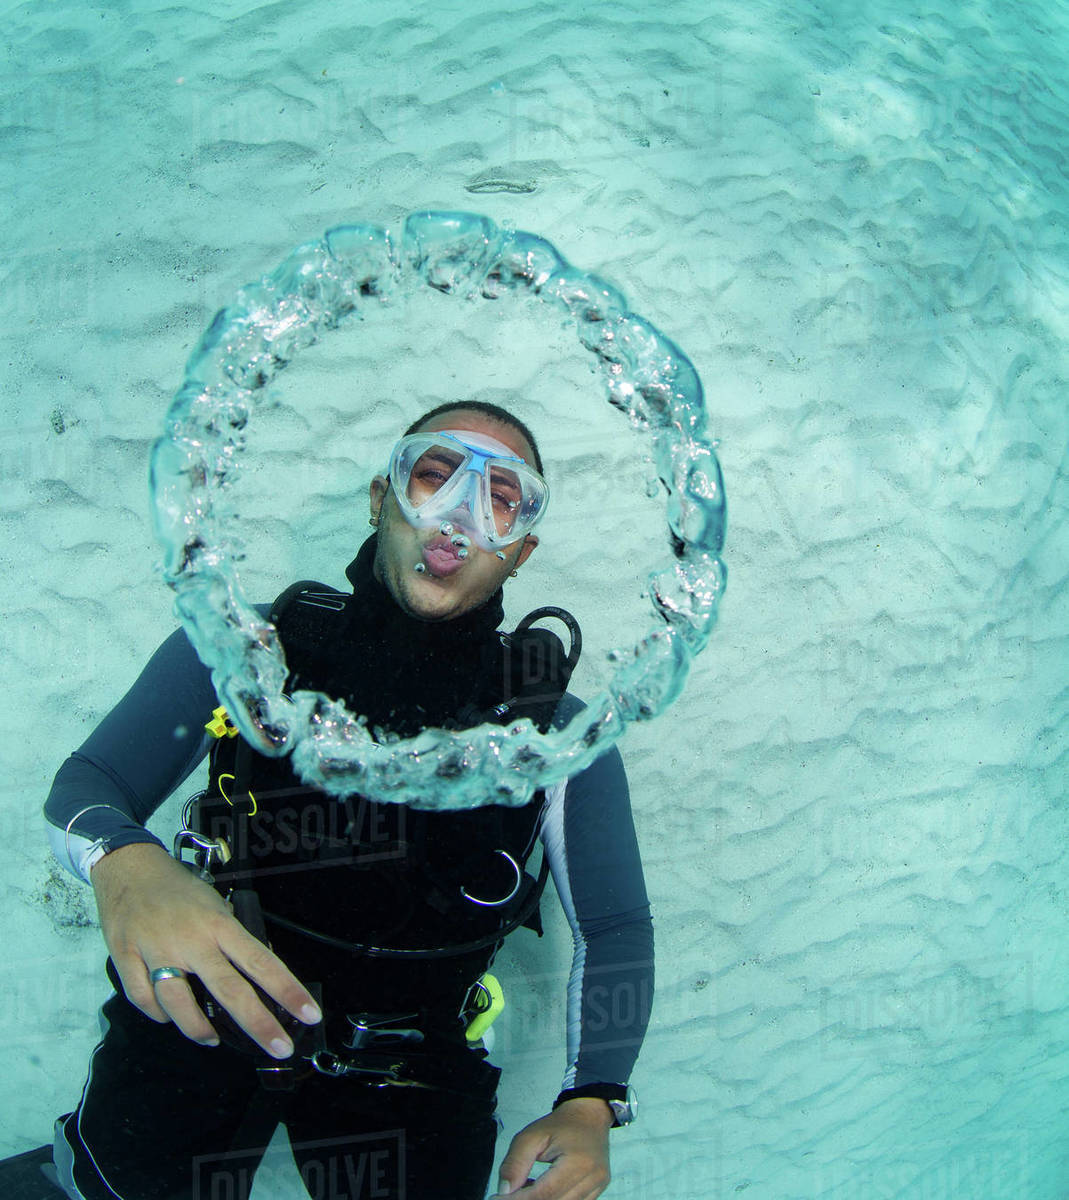 scuba high res diver getty blows rings picture photo air photography images stock detail bubble